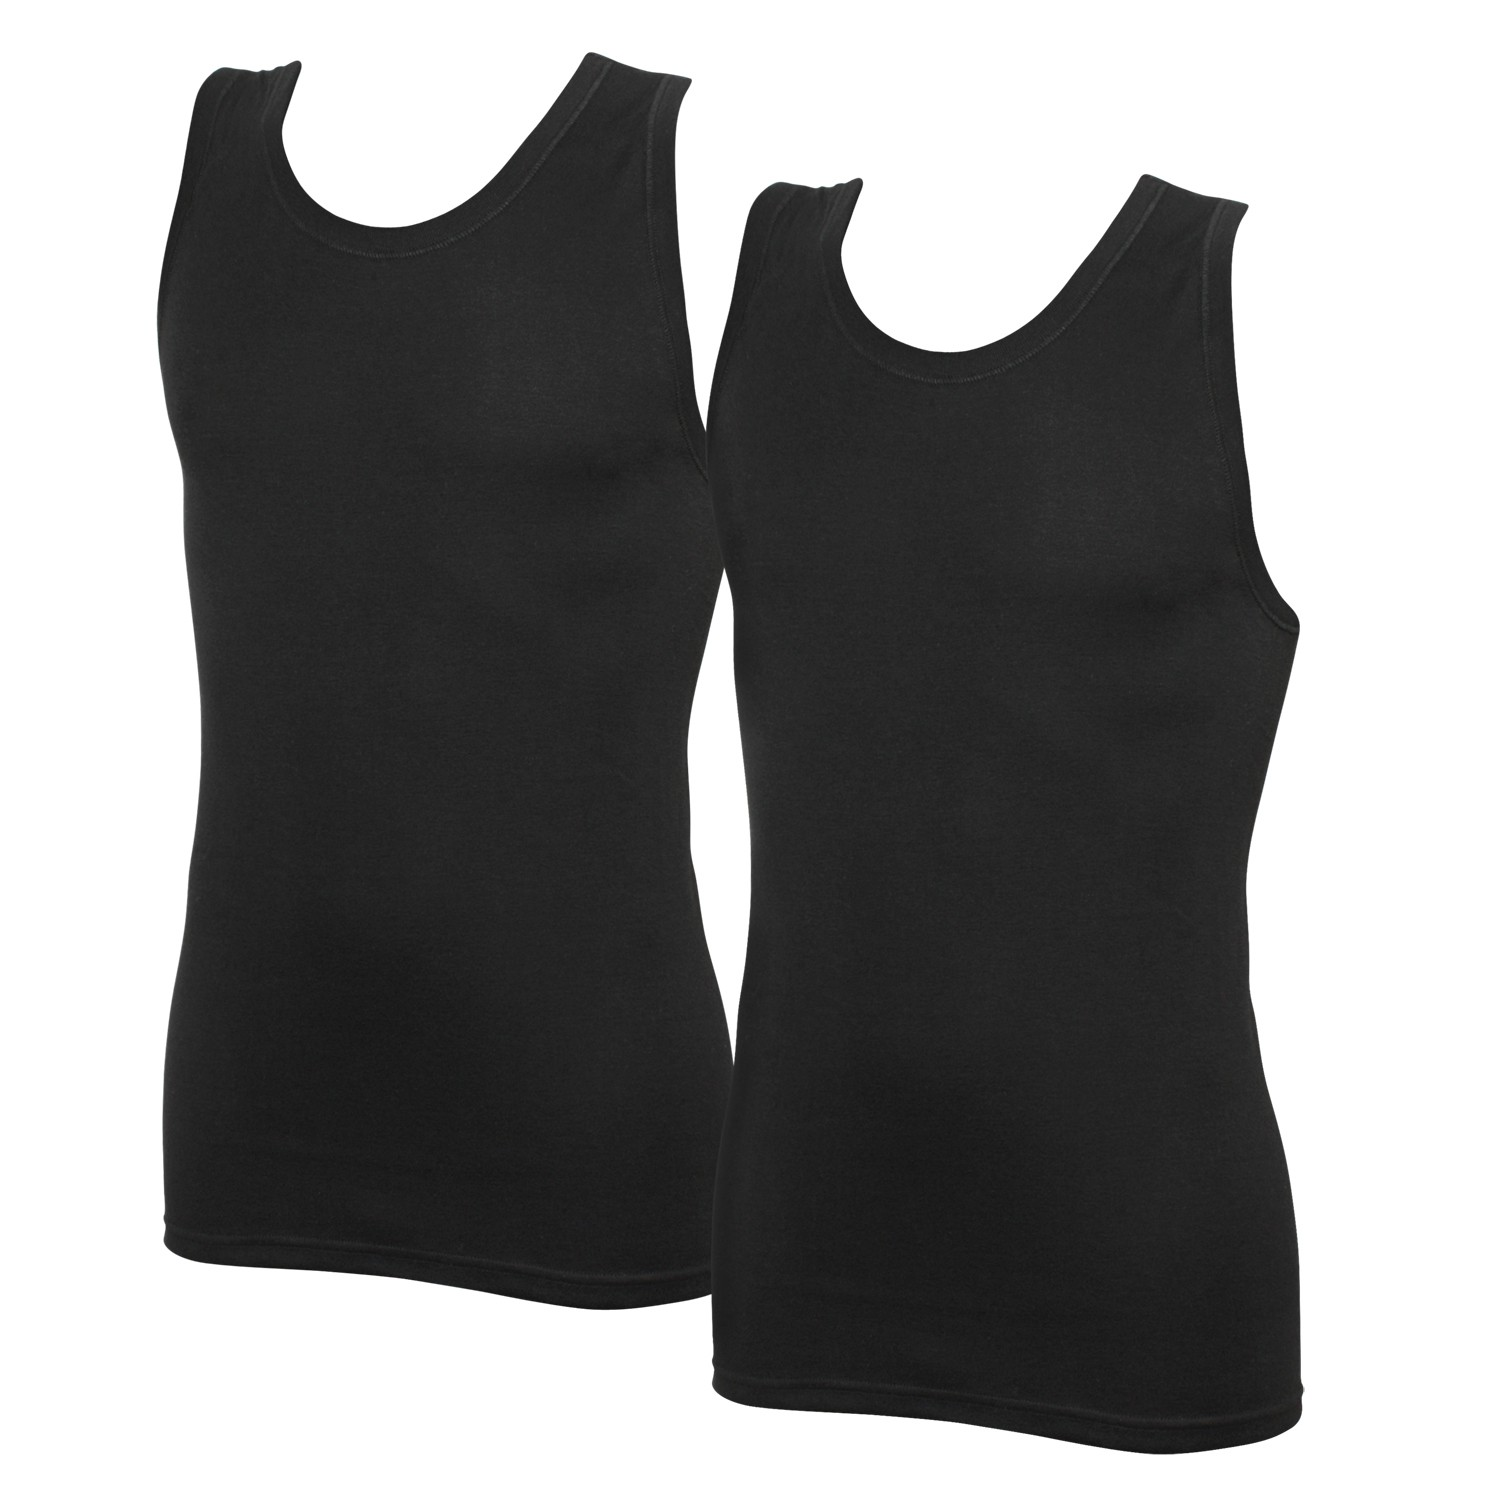 Detail Image to Black sleeveless undershirts double pack from Jockey in oversize until 6XL